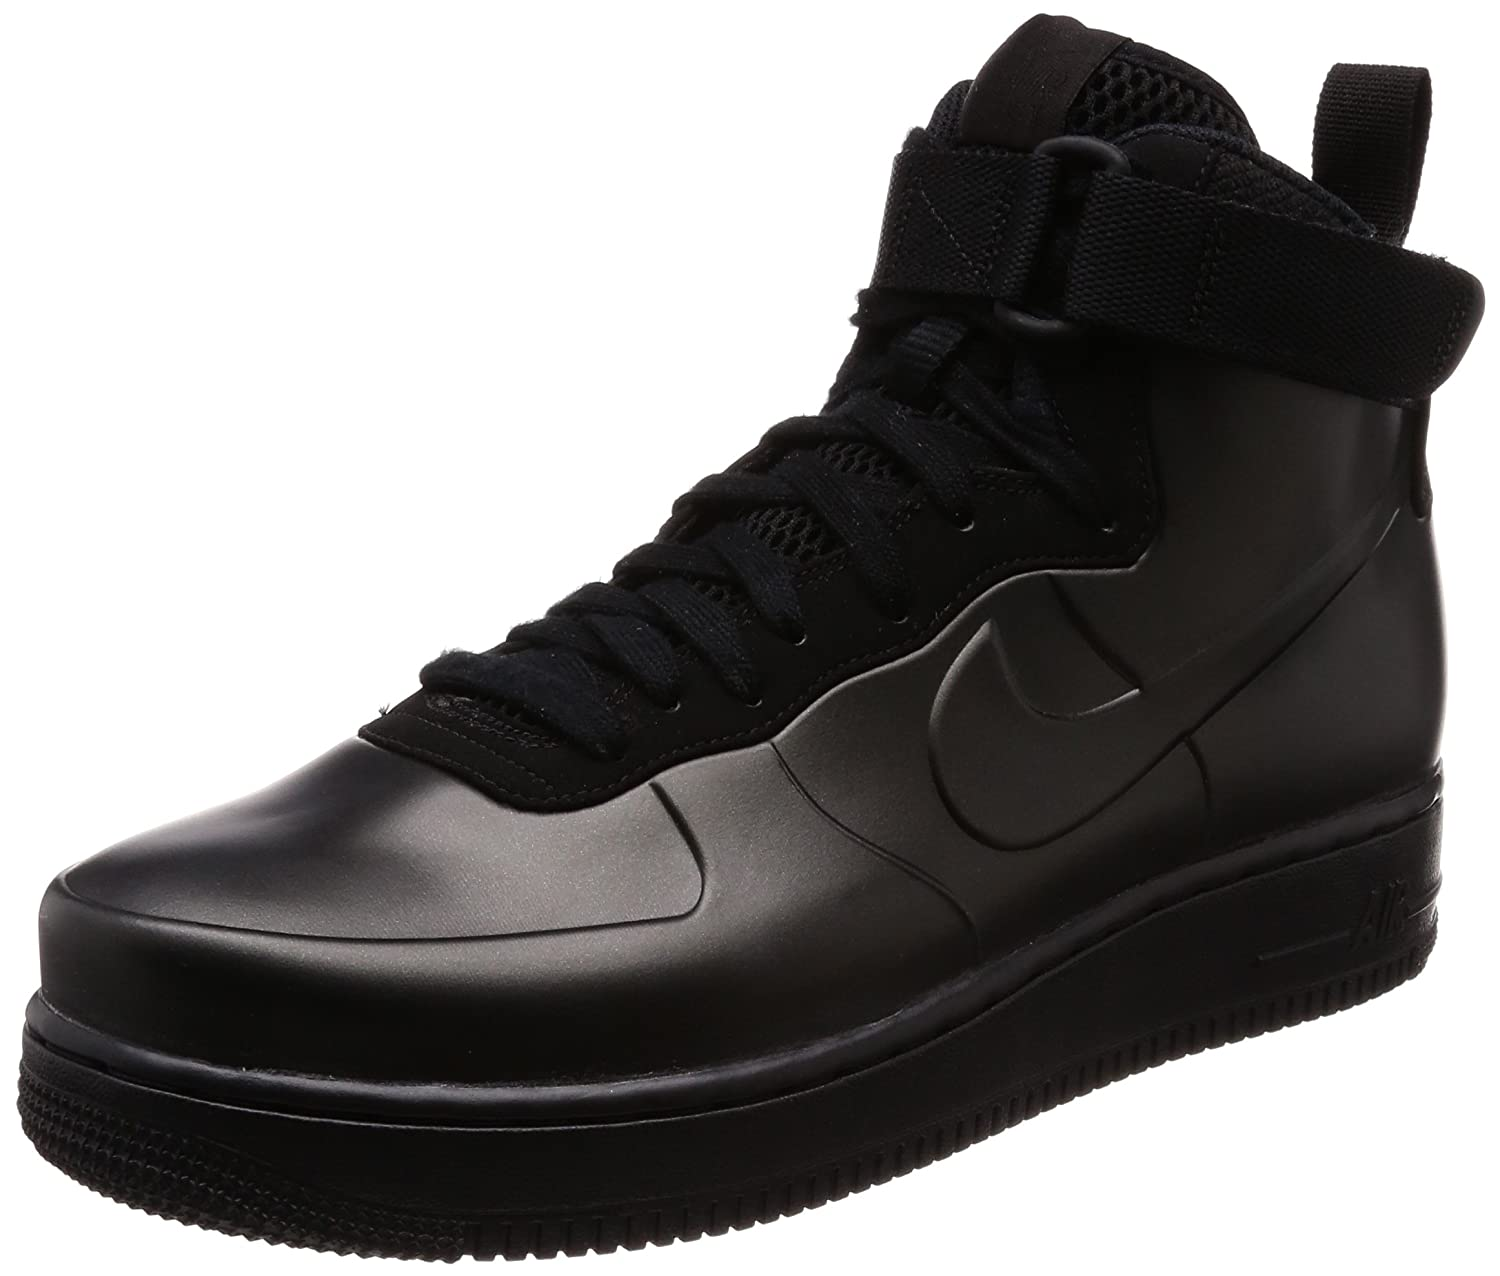 new product cd1ea 937c1 Amazon.com   Nike Air Force 1 Foamposite Cup Mens Fashion Sneakers    Basketball